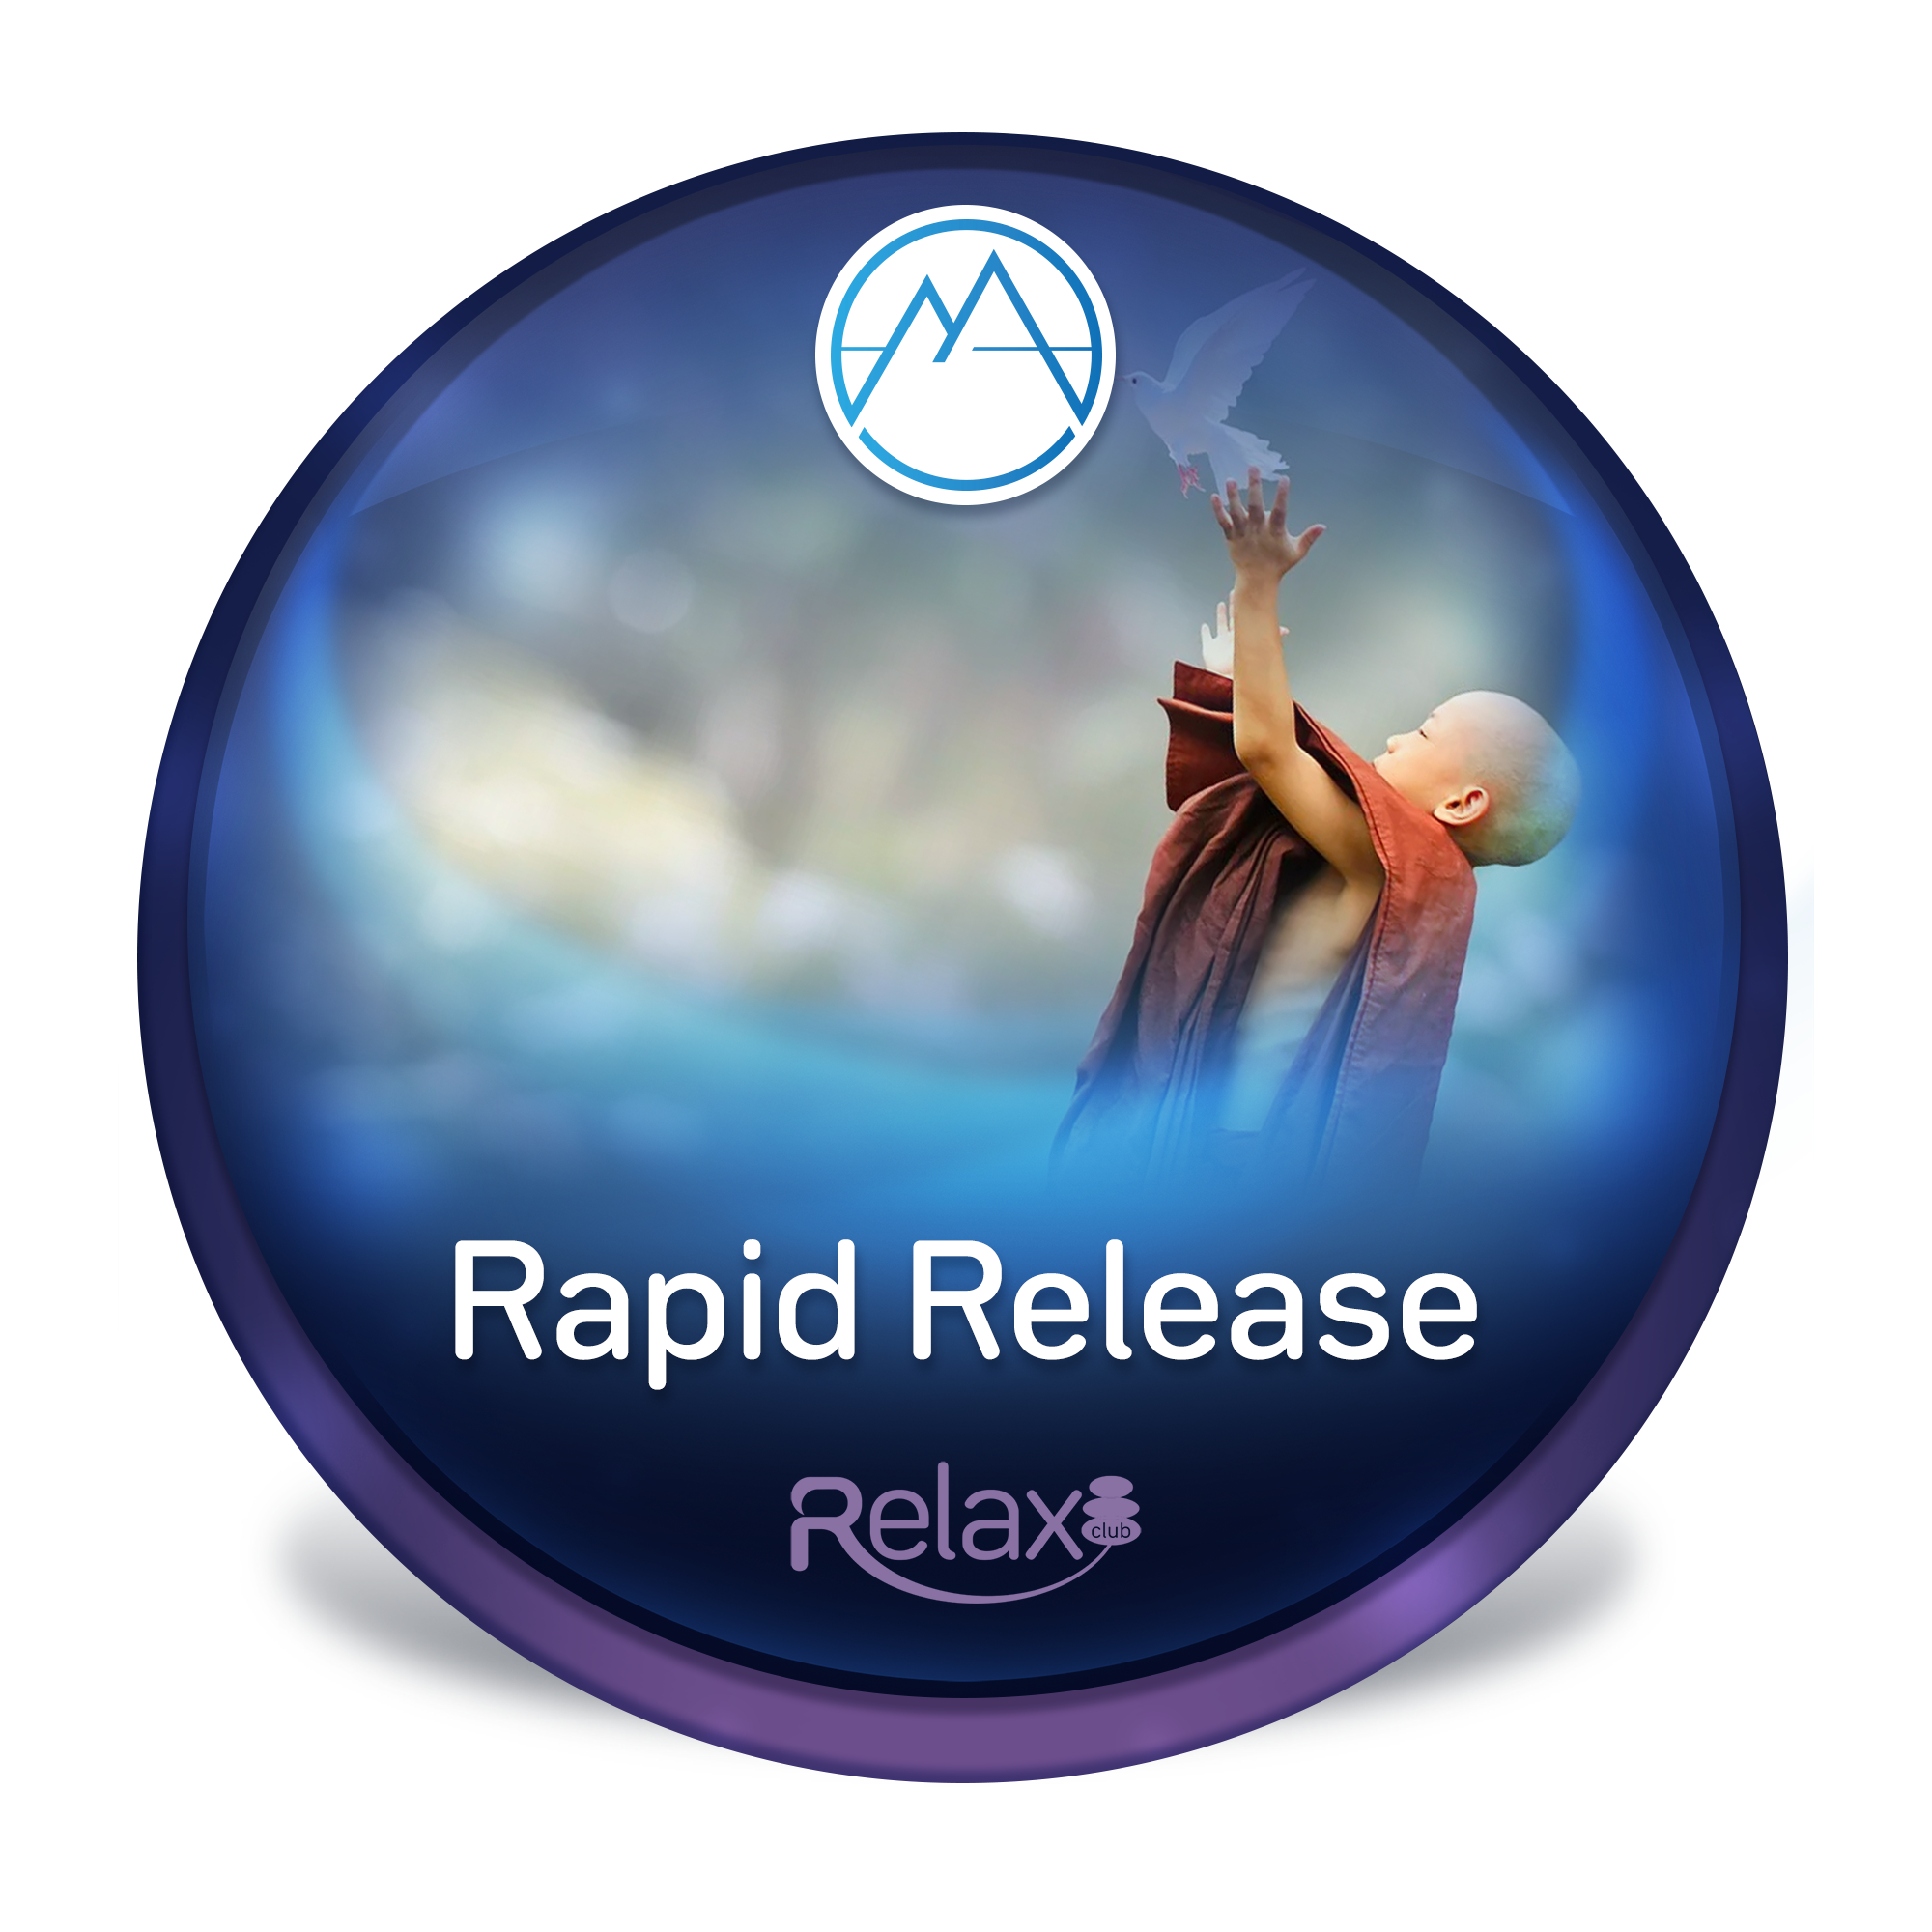 Rapid Release cover image